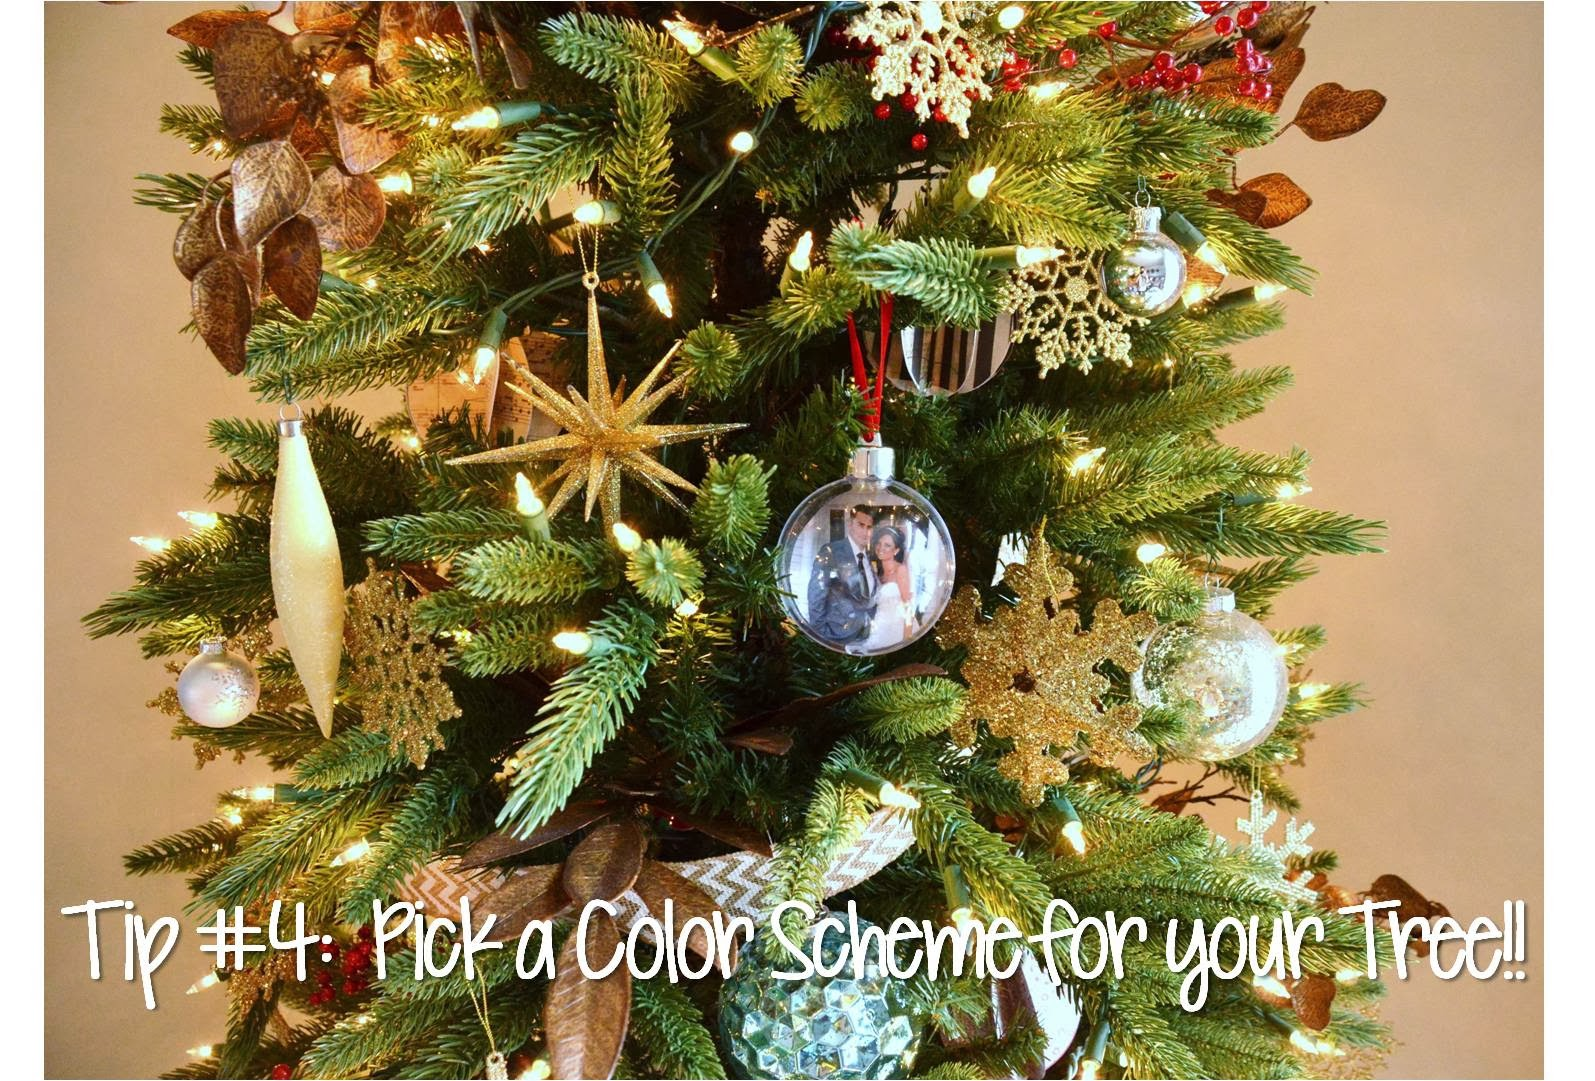 People Decorating For Christmas jessica stout design}: {holiday decorating} day 1: how to decorate